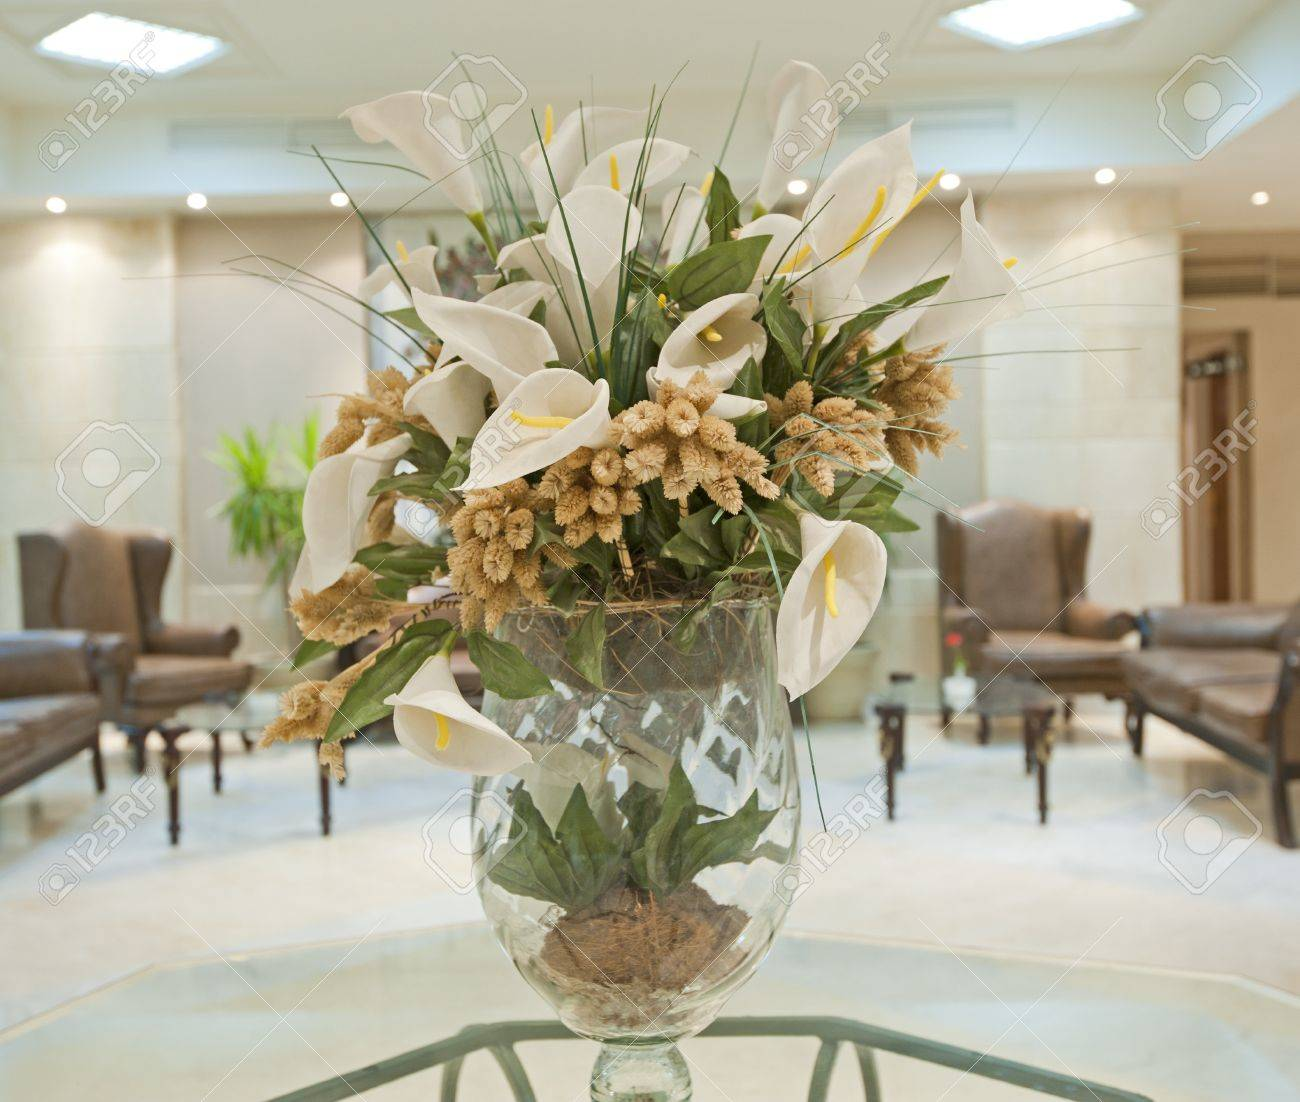 Artificial flower display in a glass vase on table of hotel lobby artificial flower display in a glass vase on table of hotel lobby stock photo 14942492 mightylinksfo